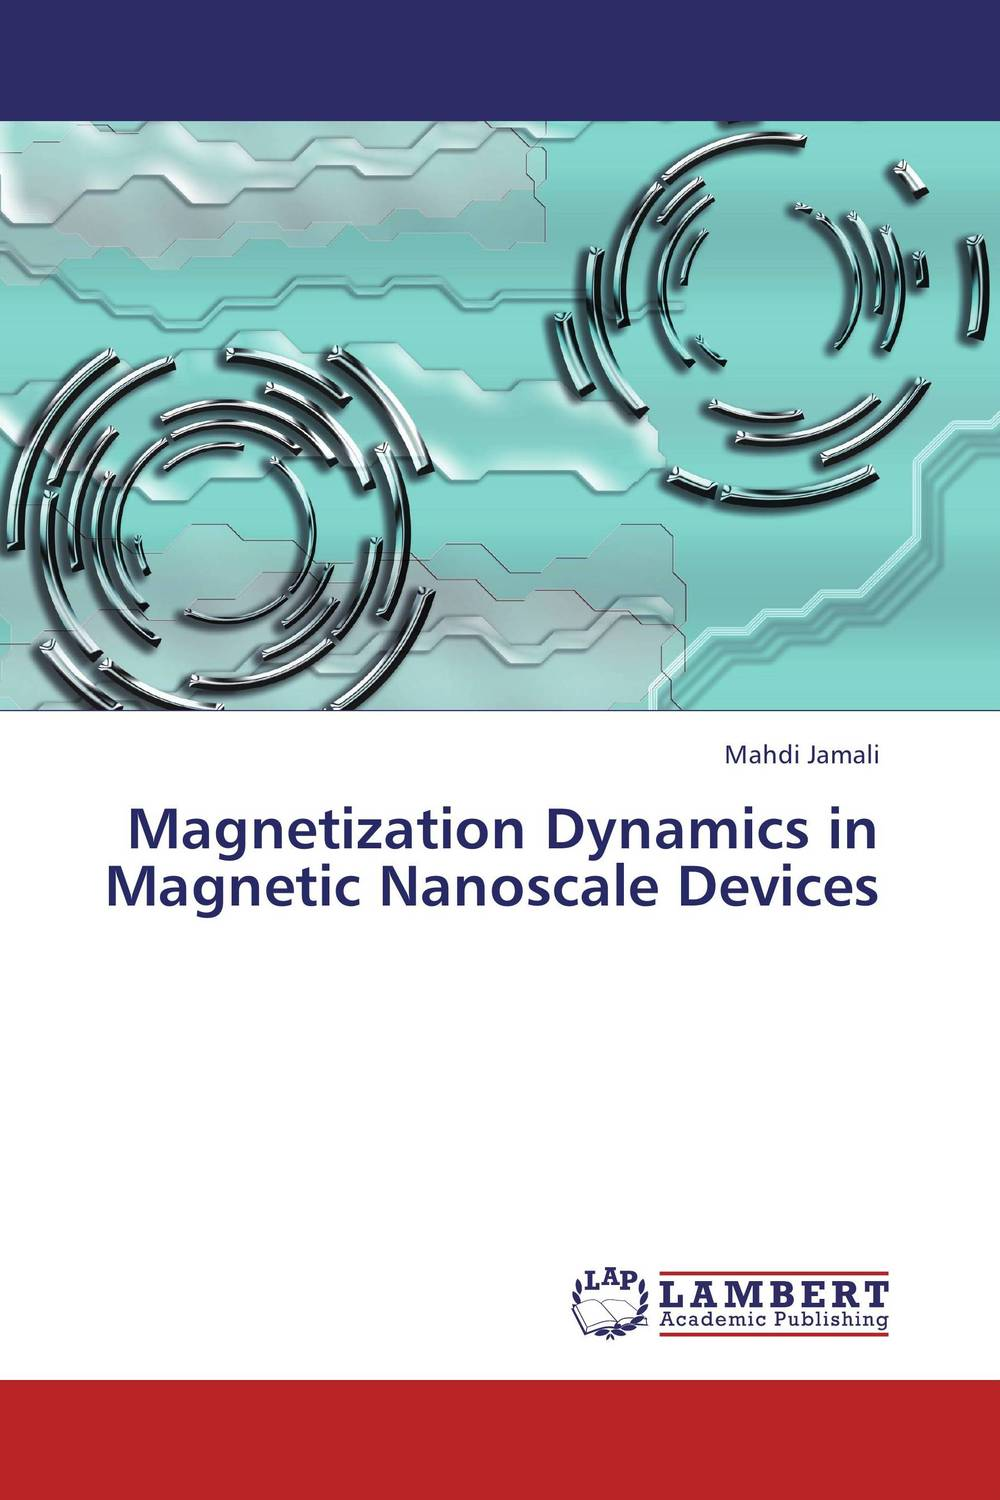 Magnetization Dynamics in Magnetic Nanoscale Devices nanoscale memristive devices for memory and logic applications